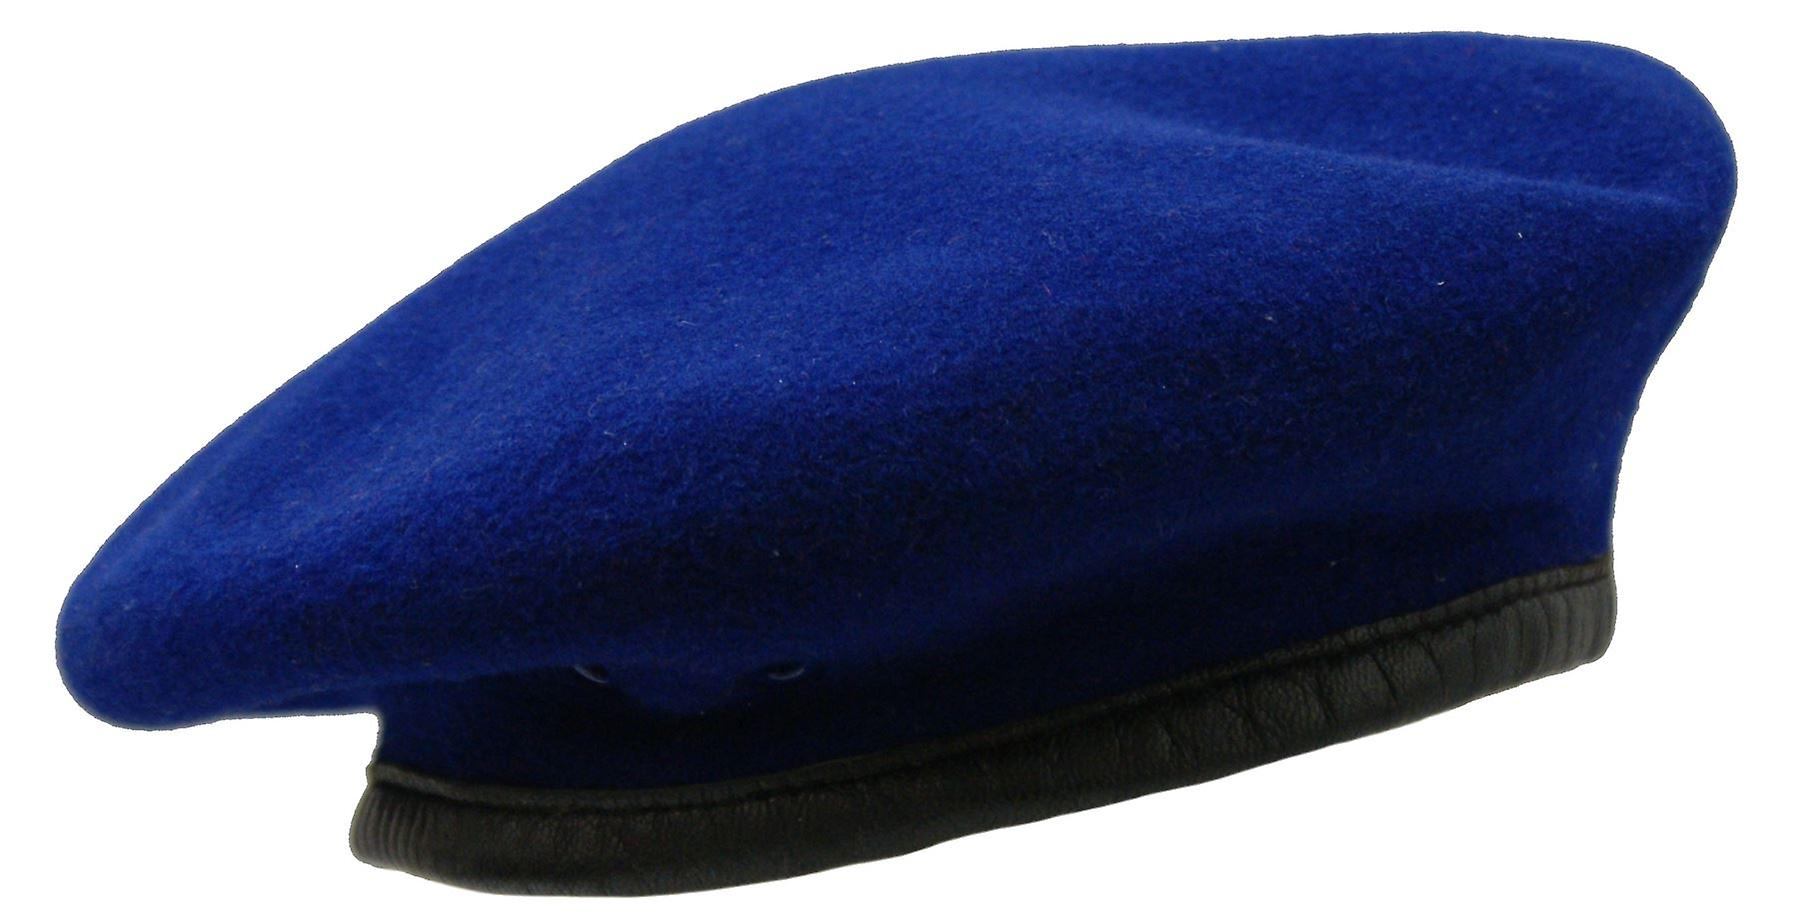 c249c882b3283 British Army Style Wool Mens Beret Hat Cap Leather Band